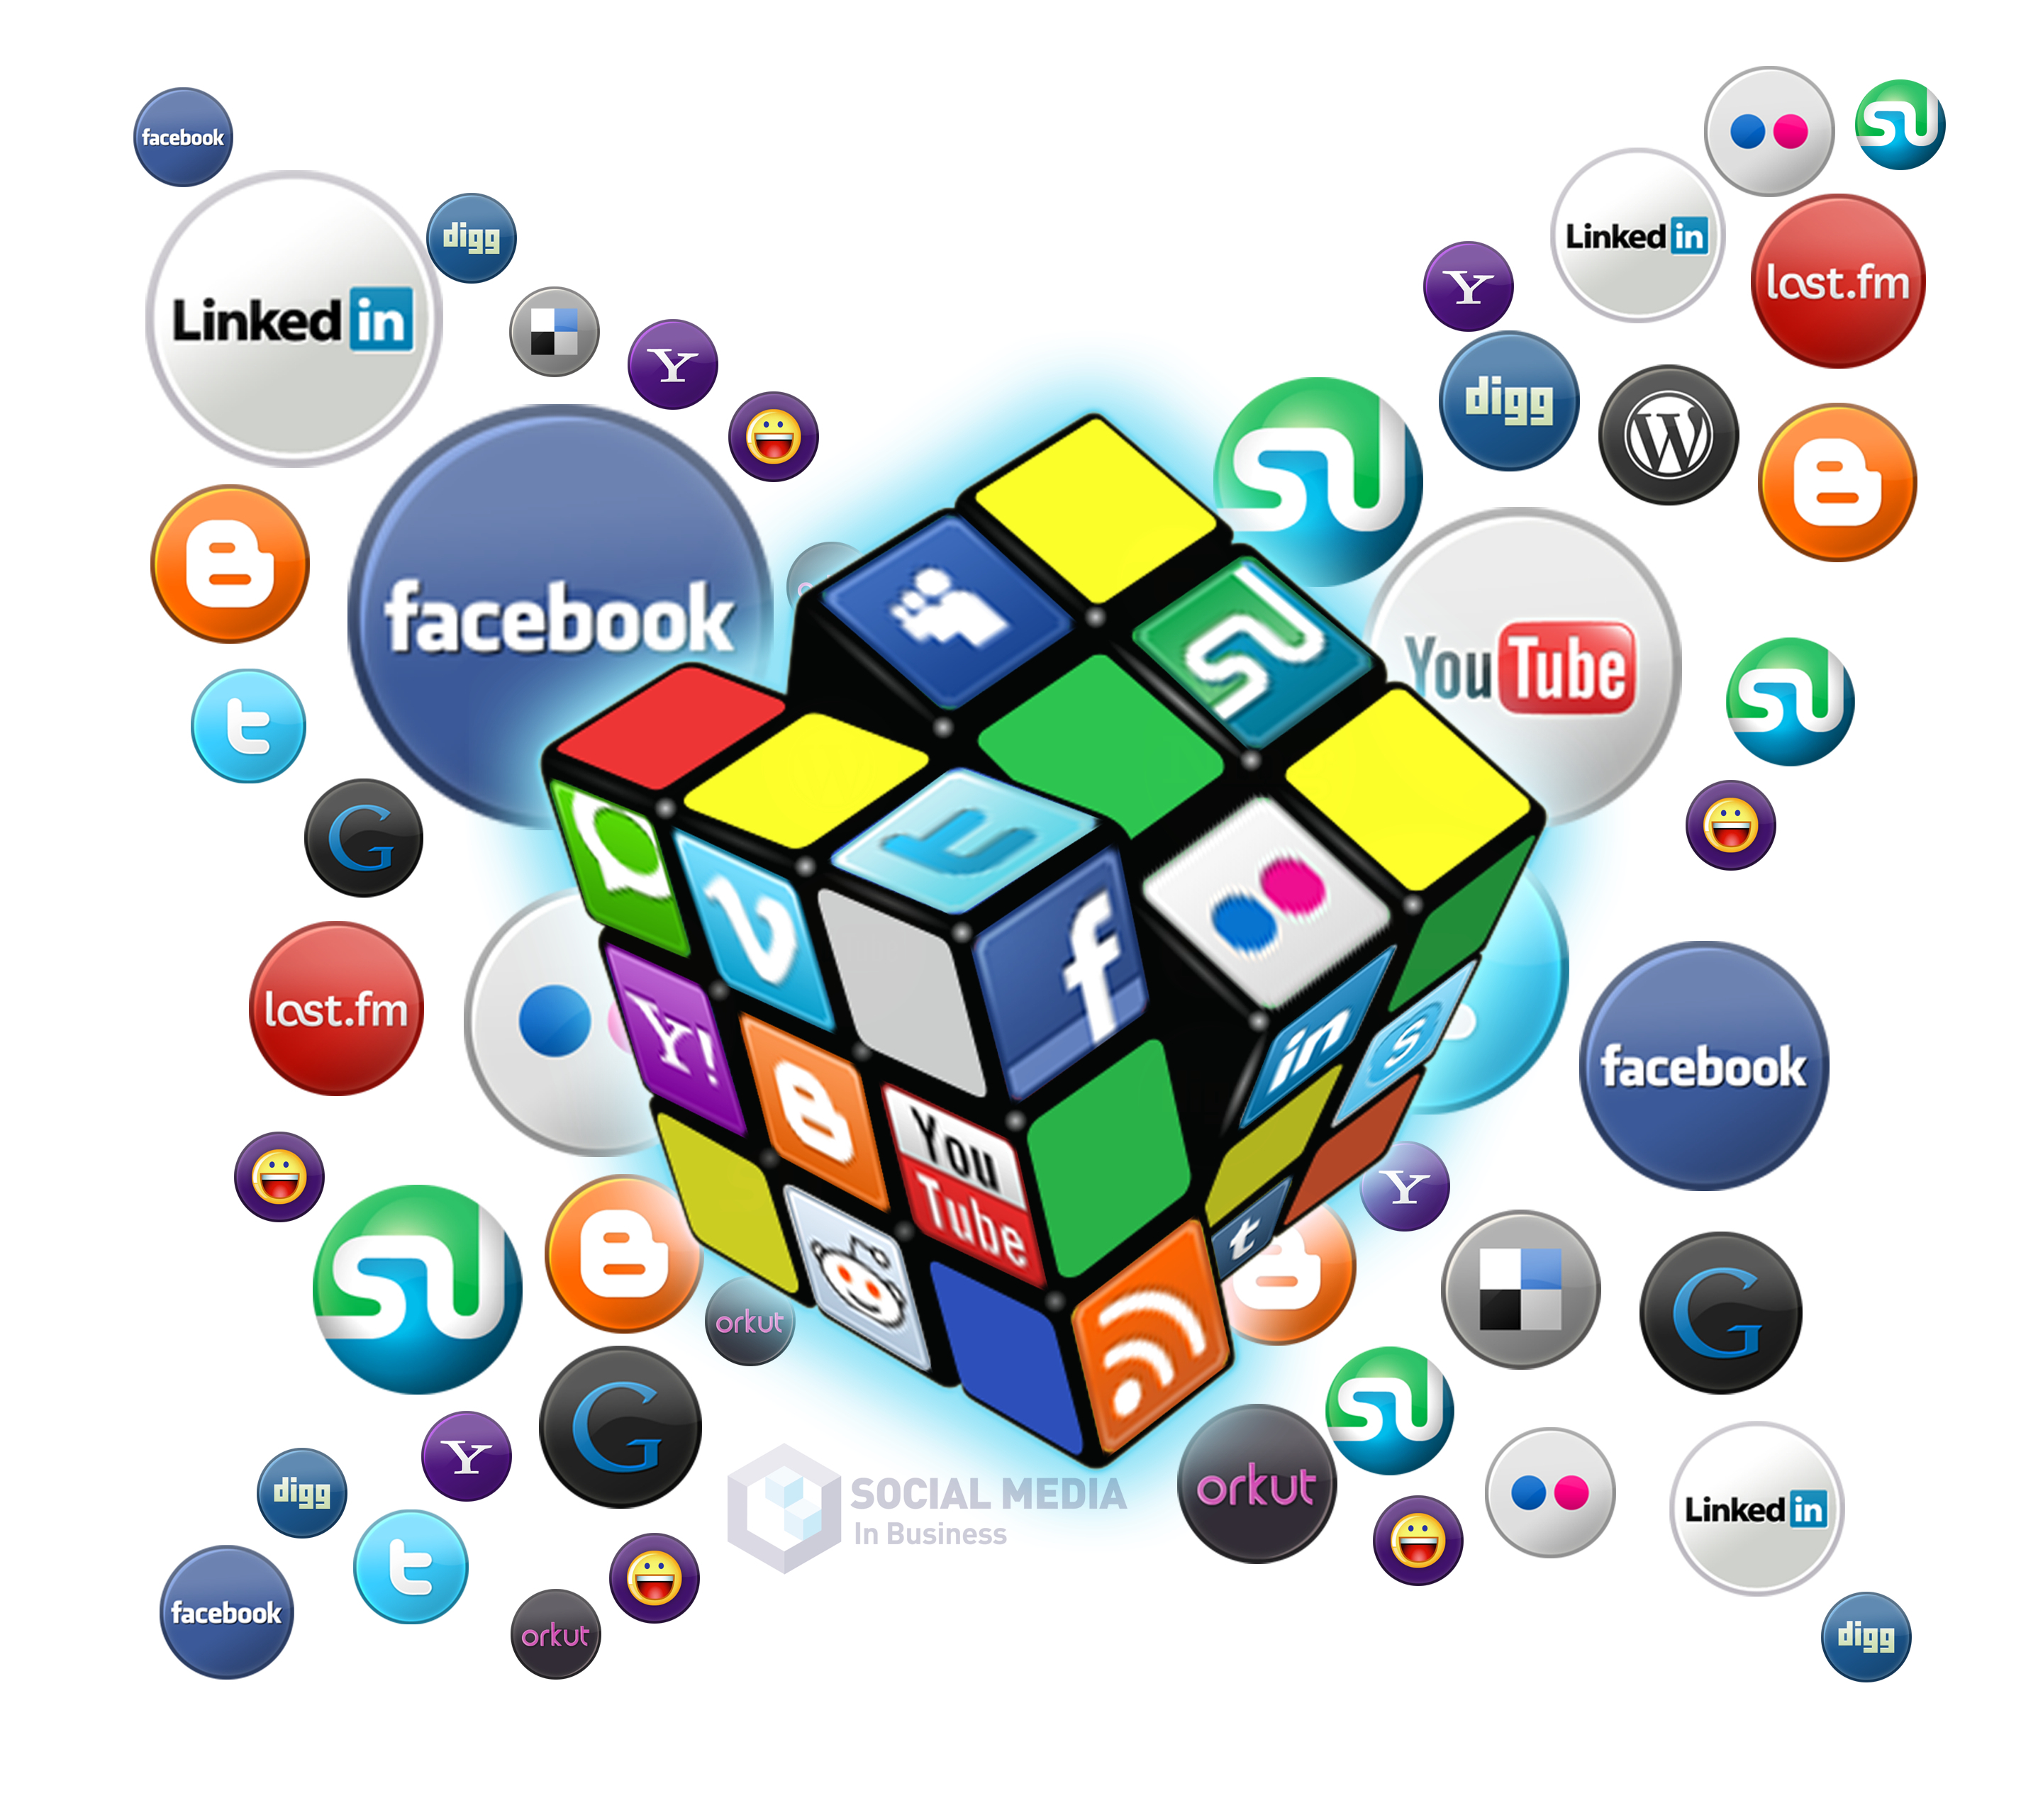 9526739971_75c085e4ca_o 7 Most Influential Social Media Platforms For Bloggers Blog Marketing